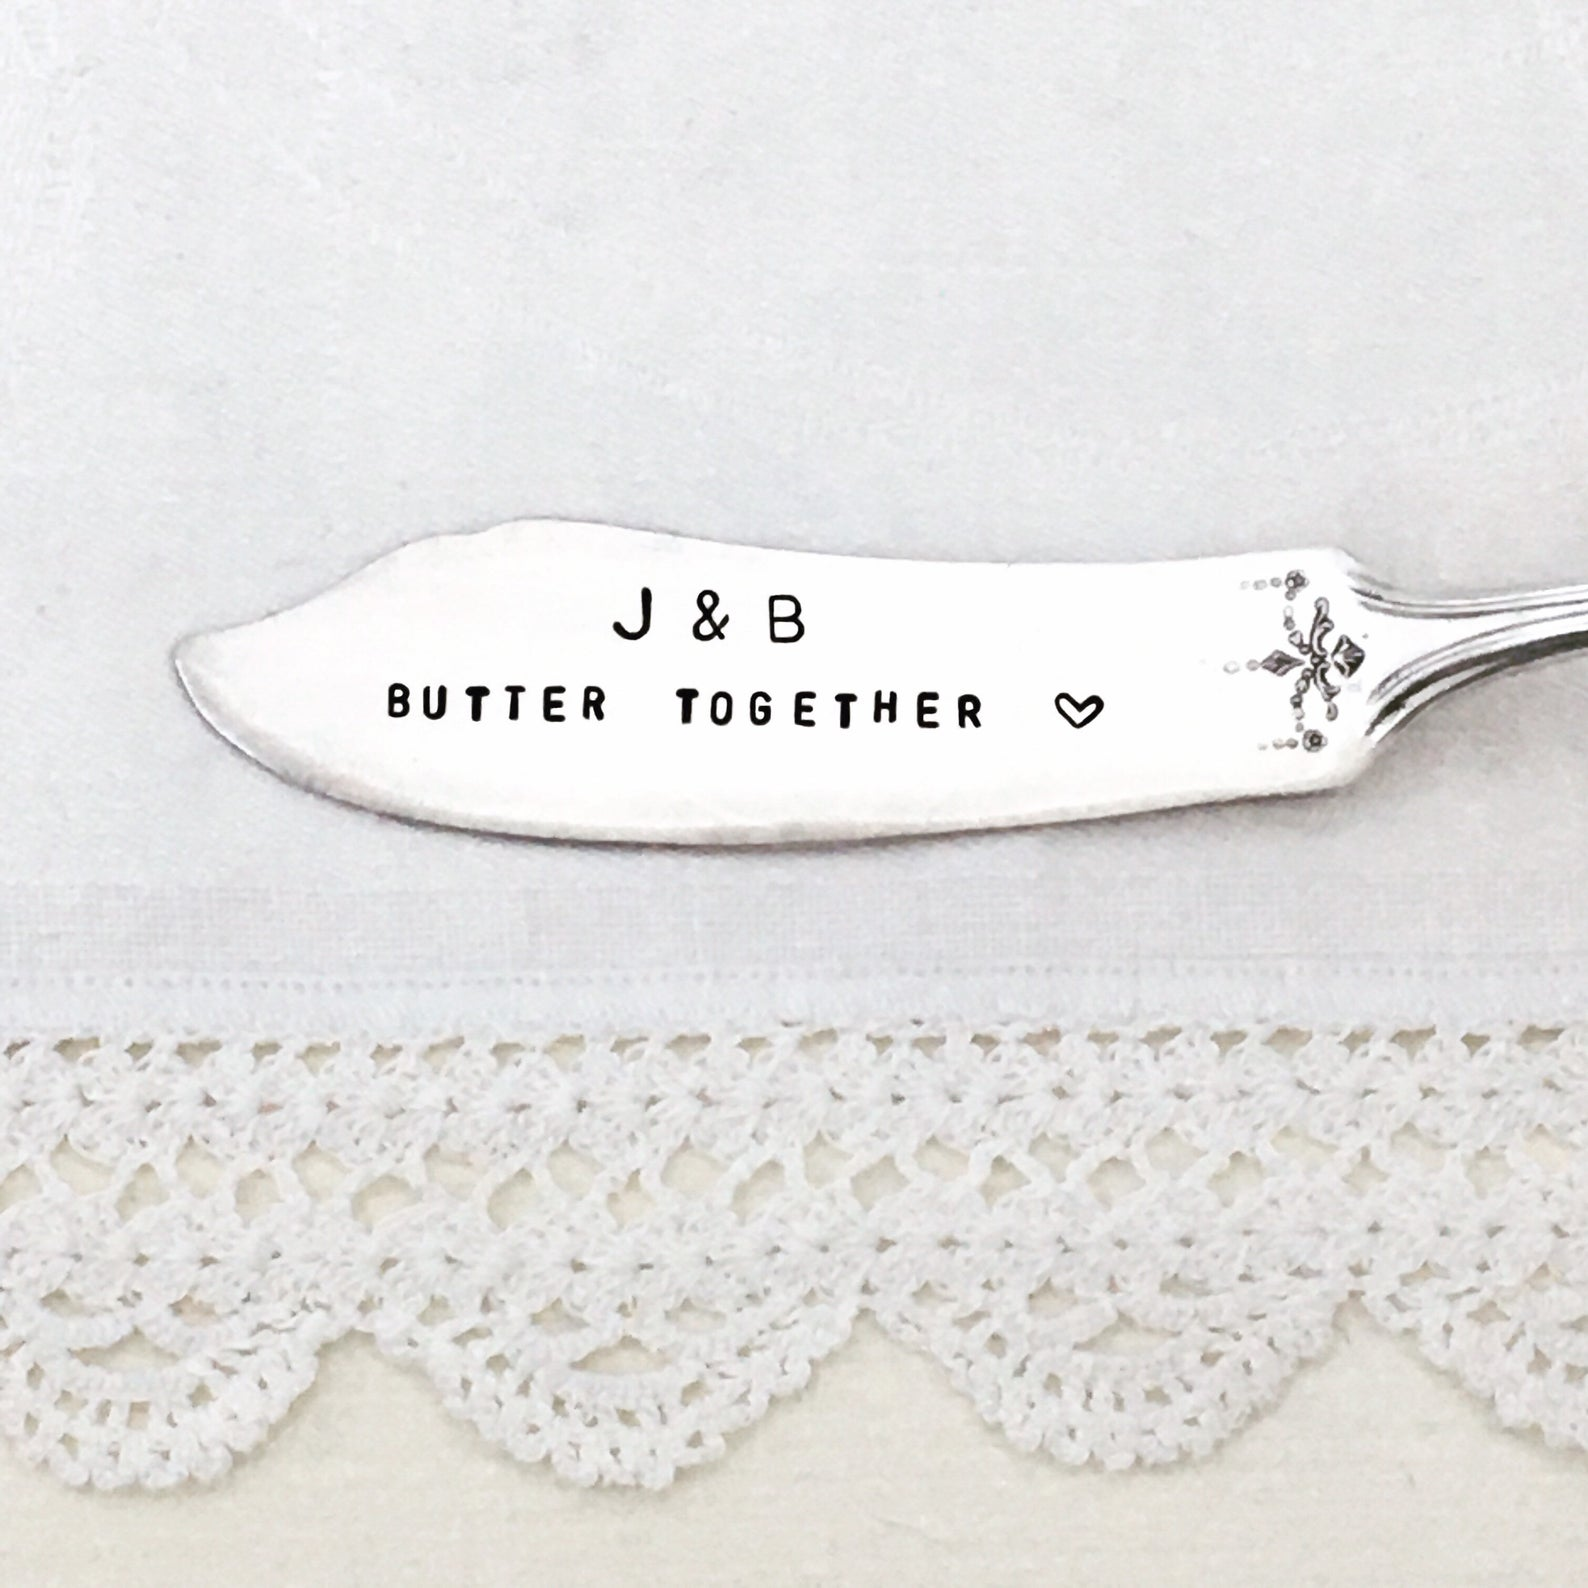 "butter knife engraved with ""J & B Butter Together"""